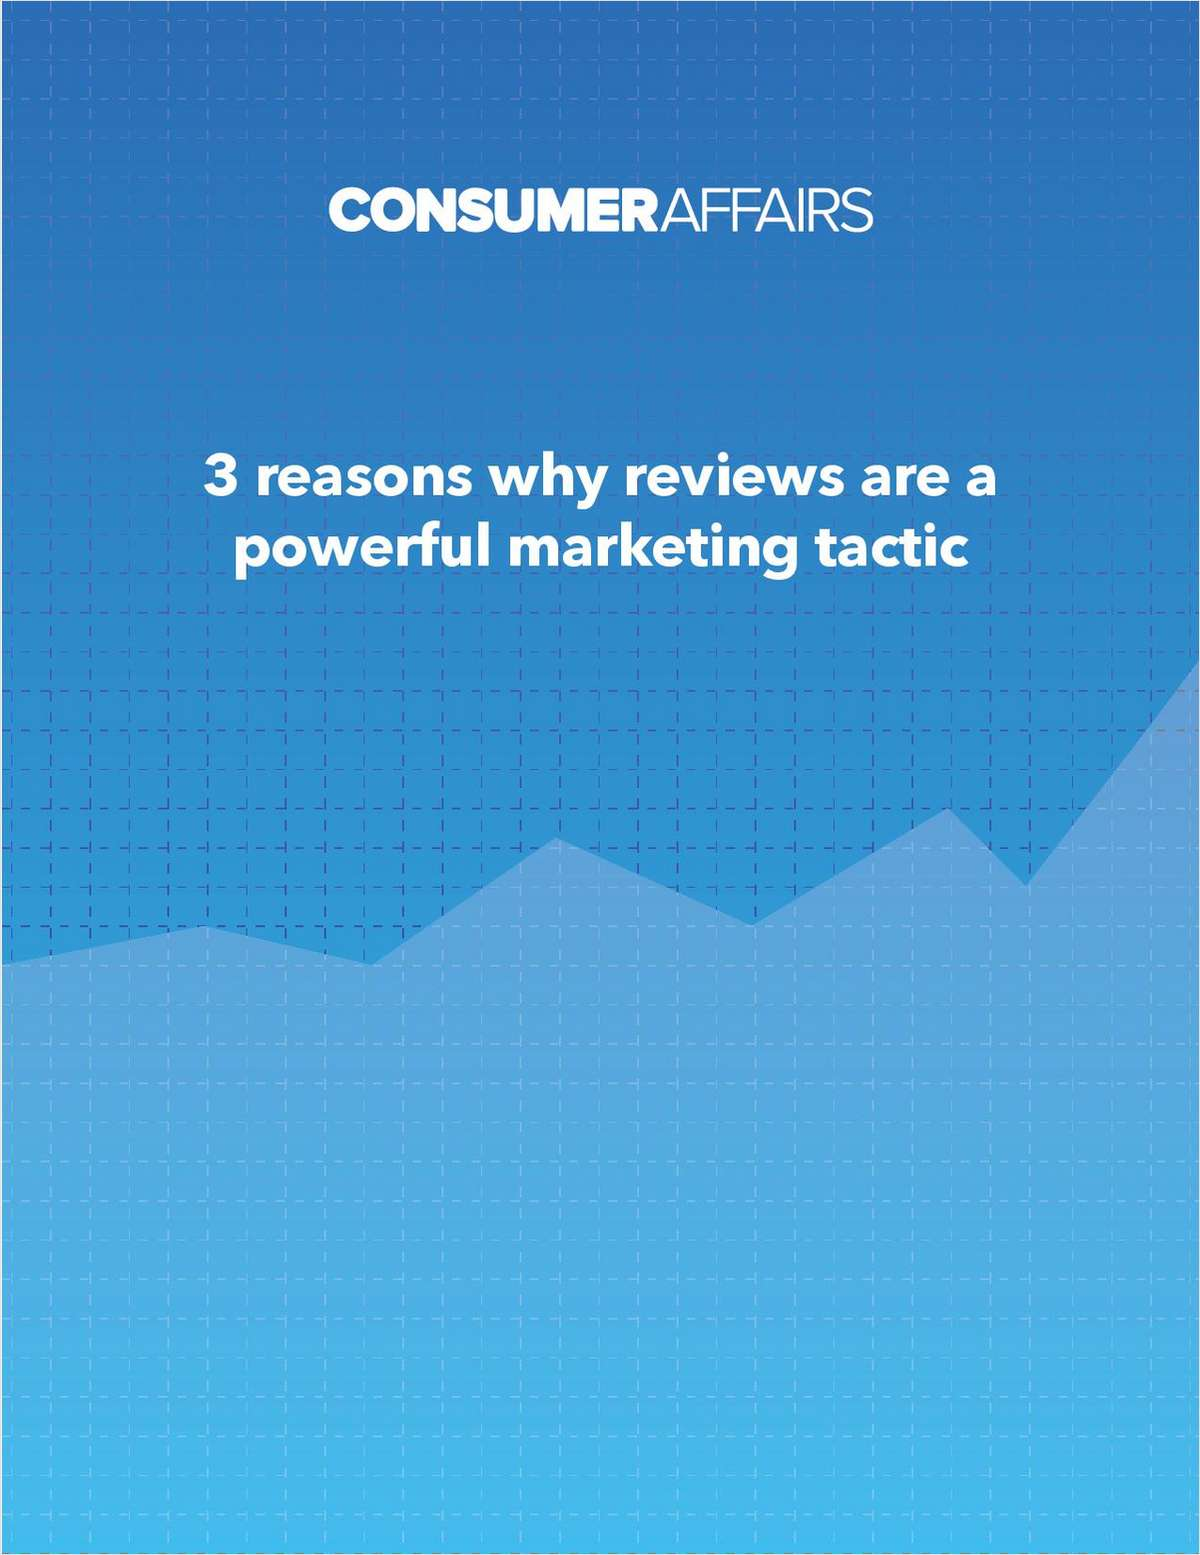 3 Reasons Why Reviews Are A Powerful Marketing Tactic